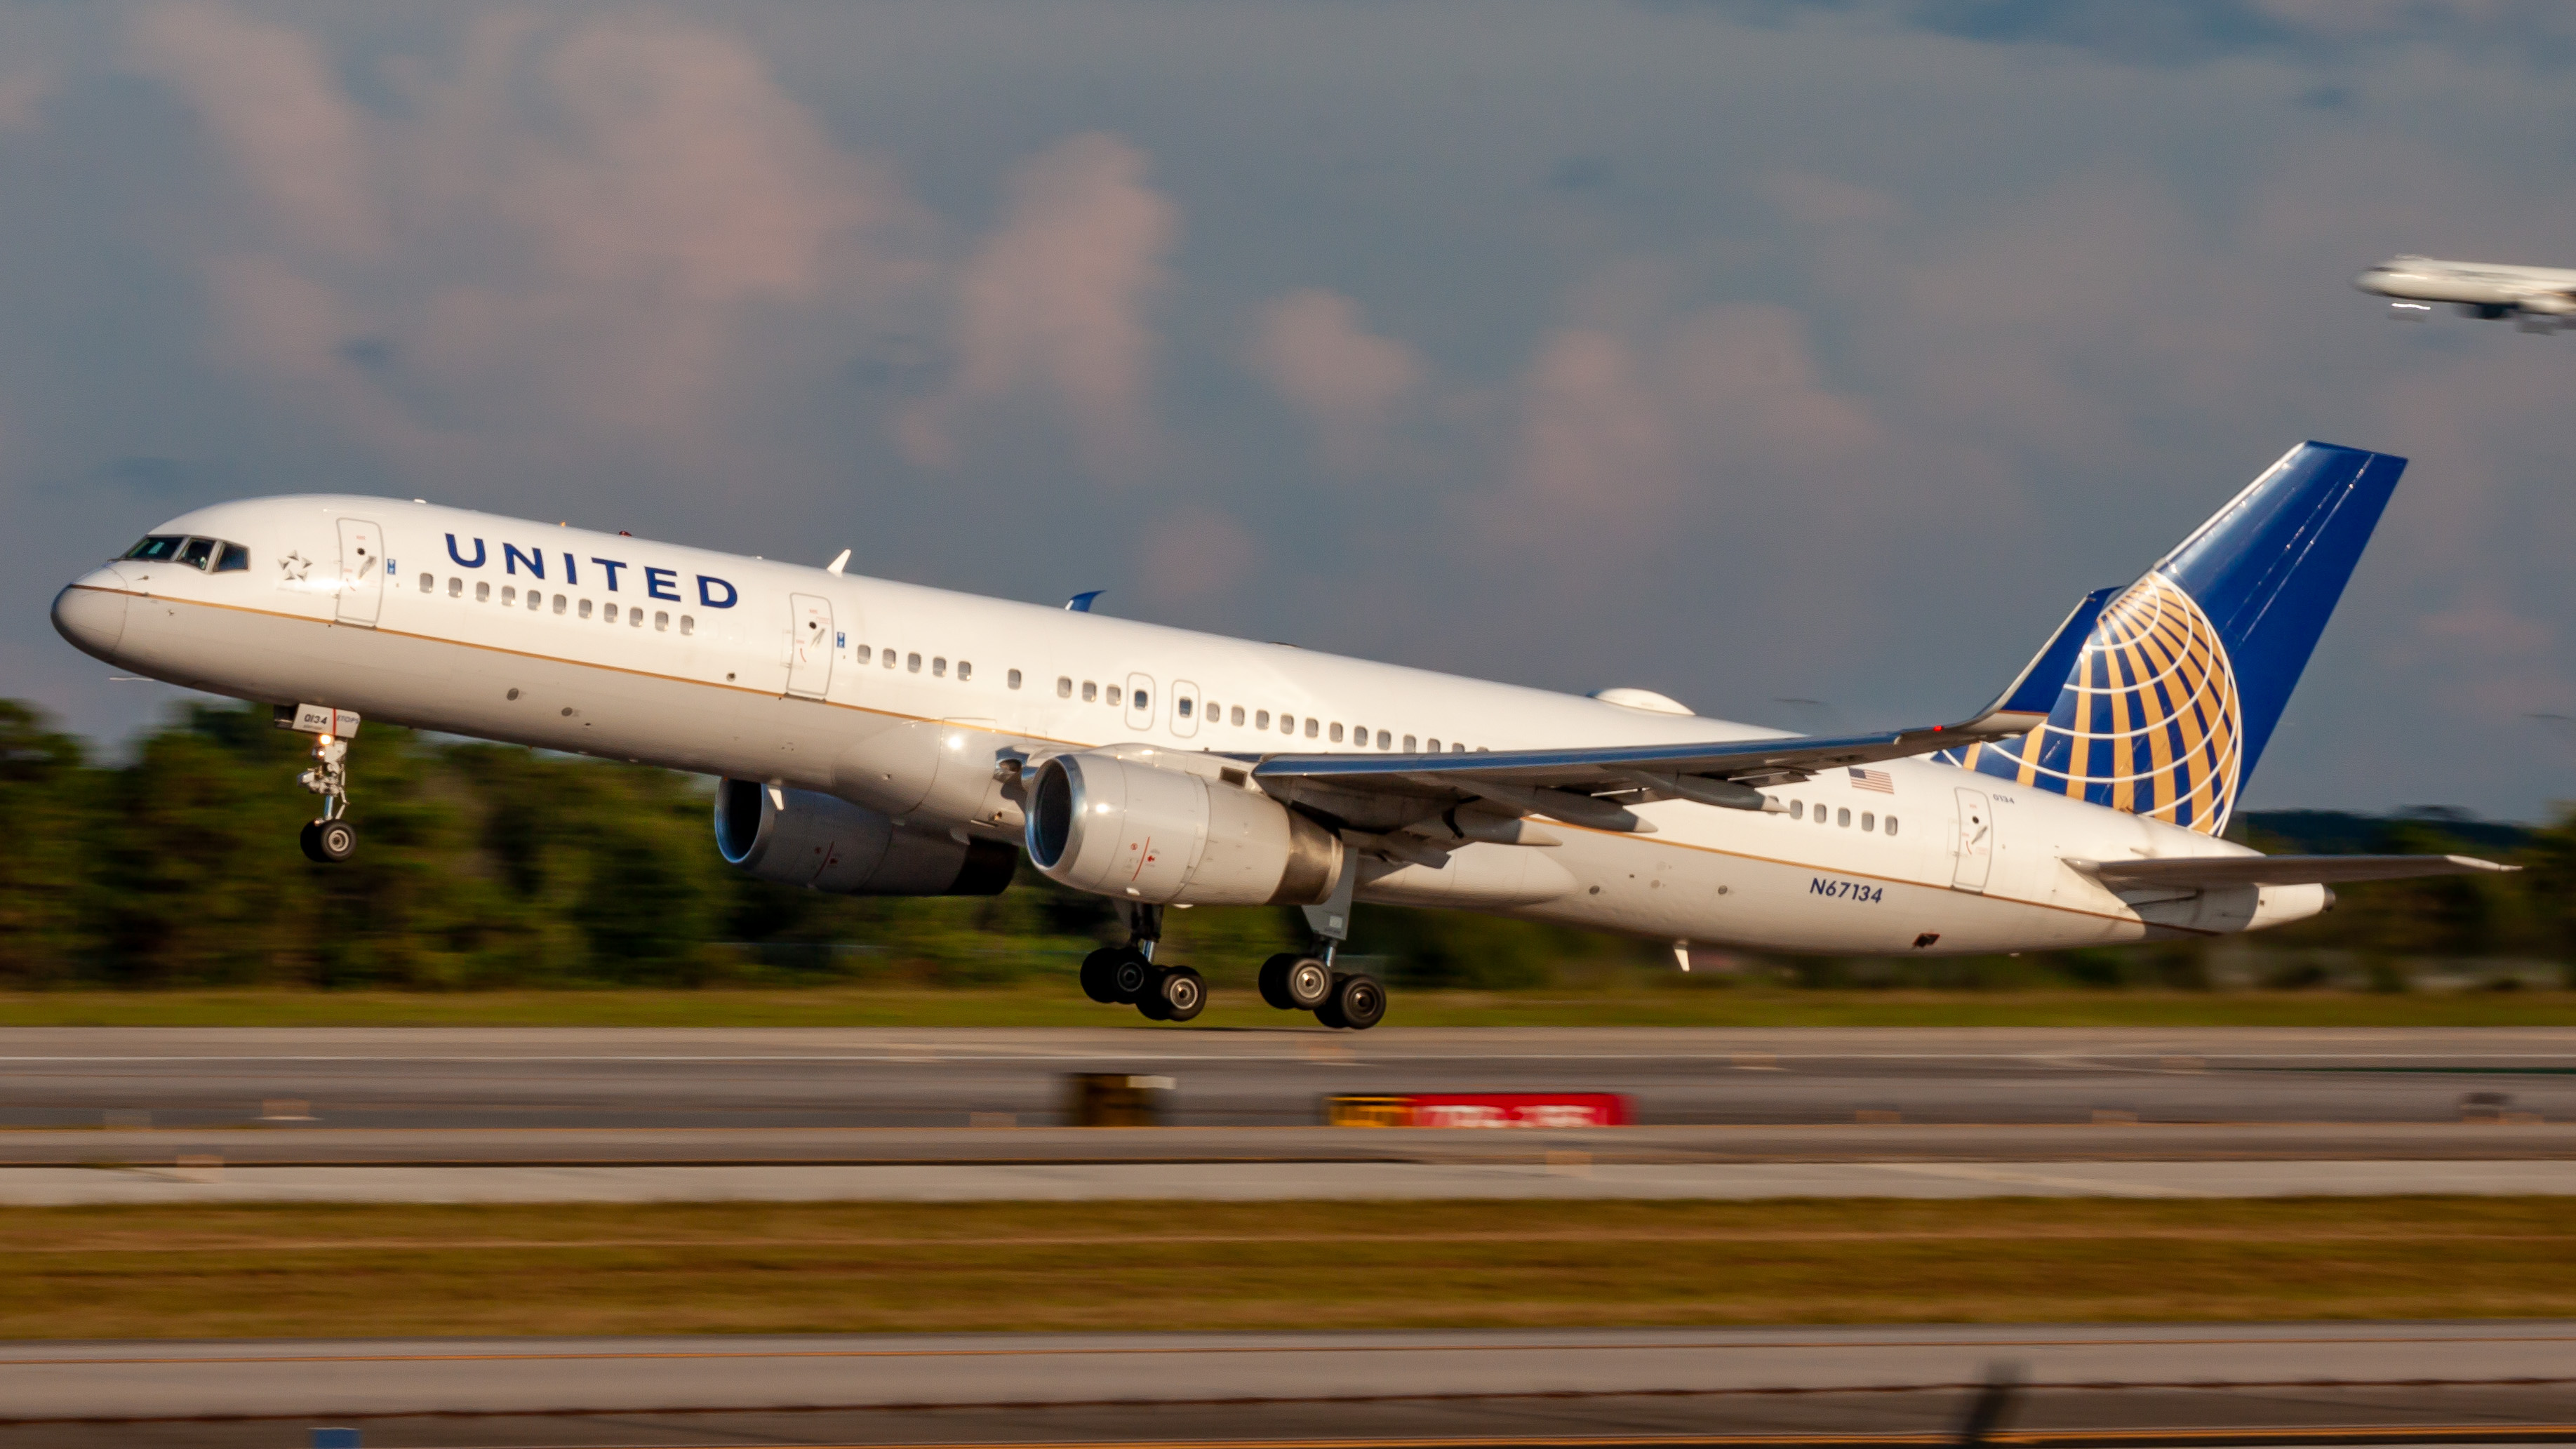 Photo of N67134 - United Airlines Boeing 757-200 at MCO